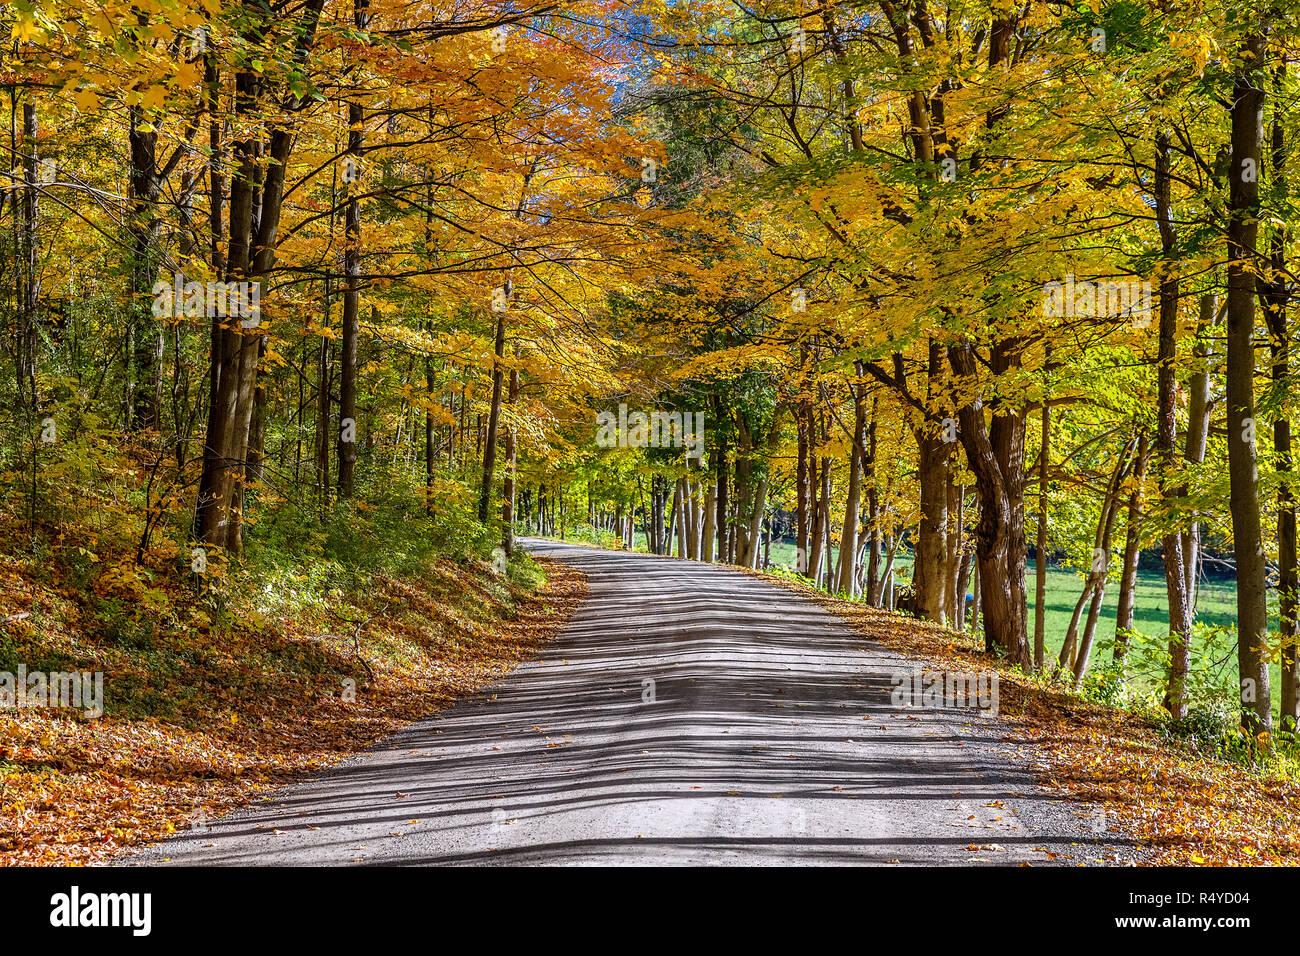 Unpaved country road winds through colorful autumn foliage, Middlebury, Vermont, USA. - Stock Image